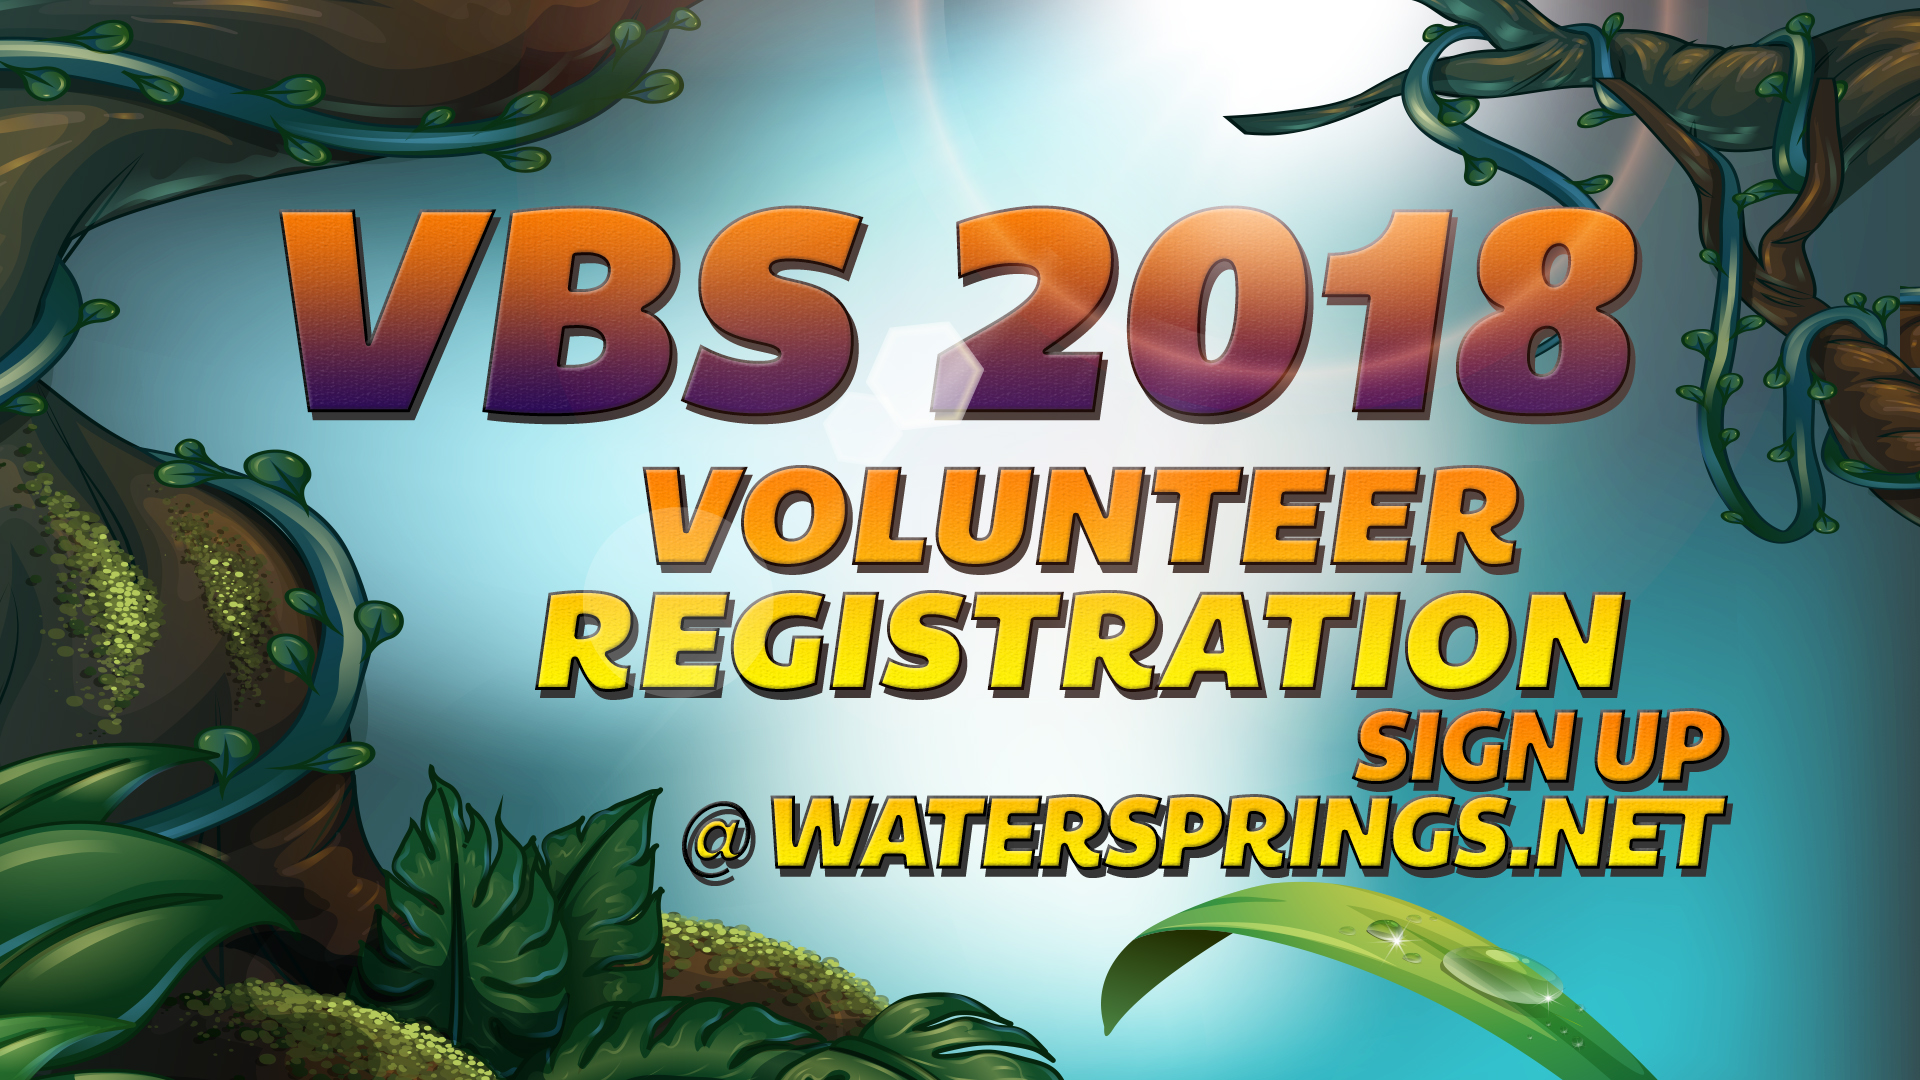 Vbs2018volunteer va